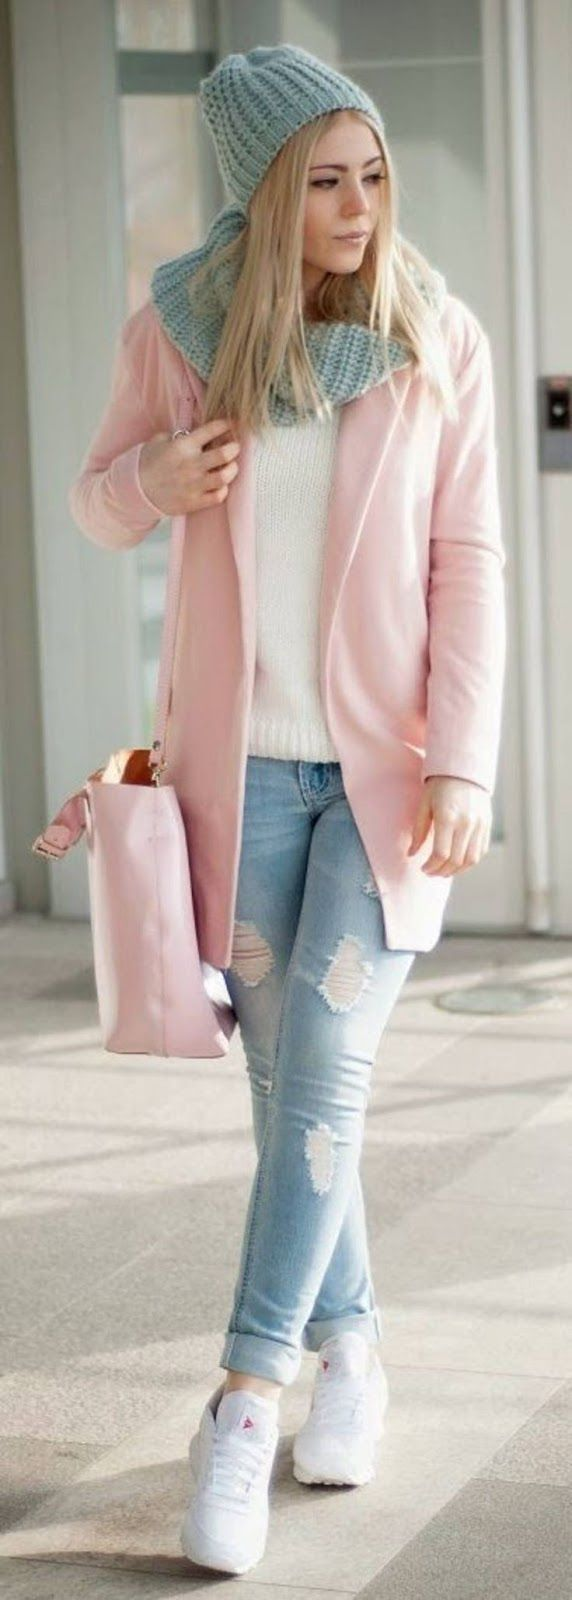 Fall outfit | Pastel pink coat and handbag, grey scarf and beanie and sneakers